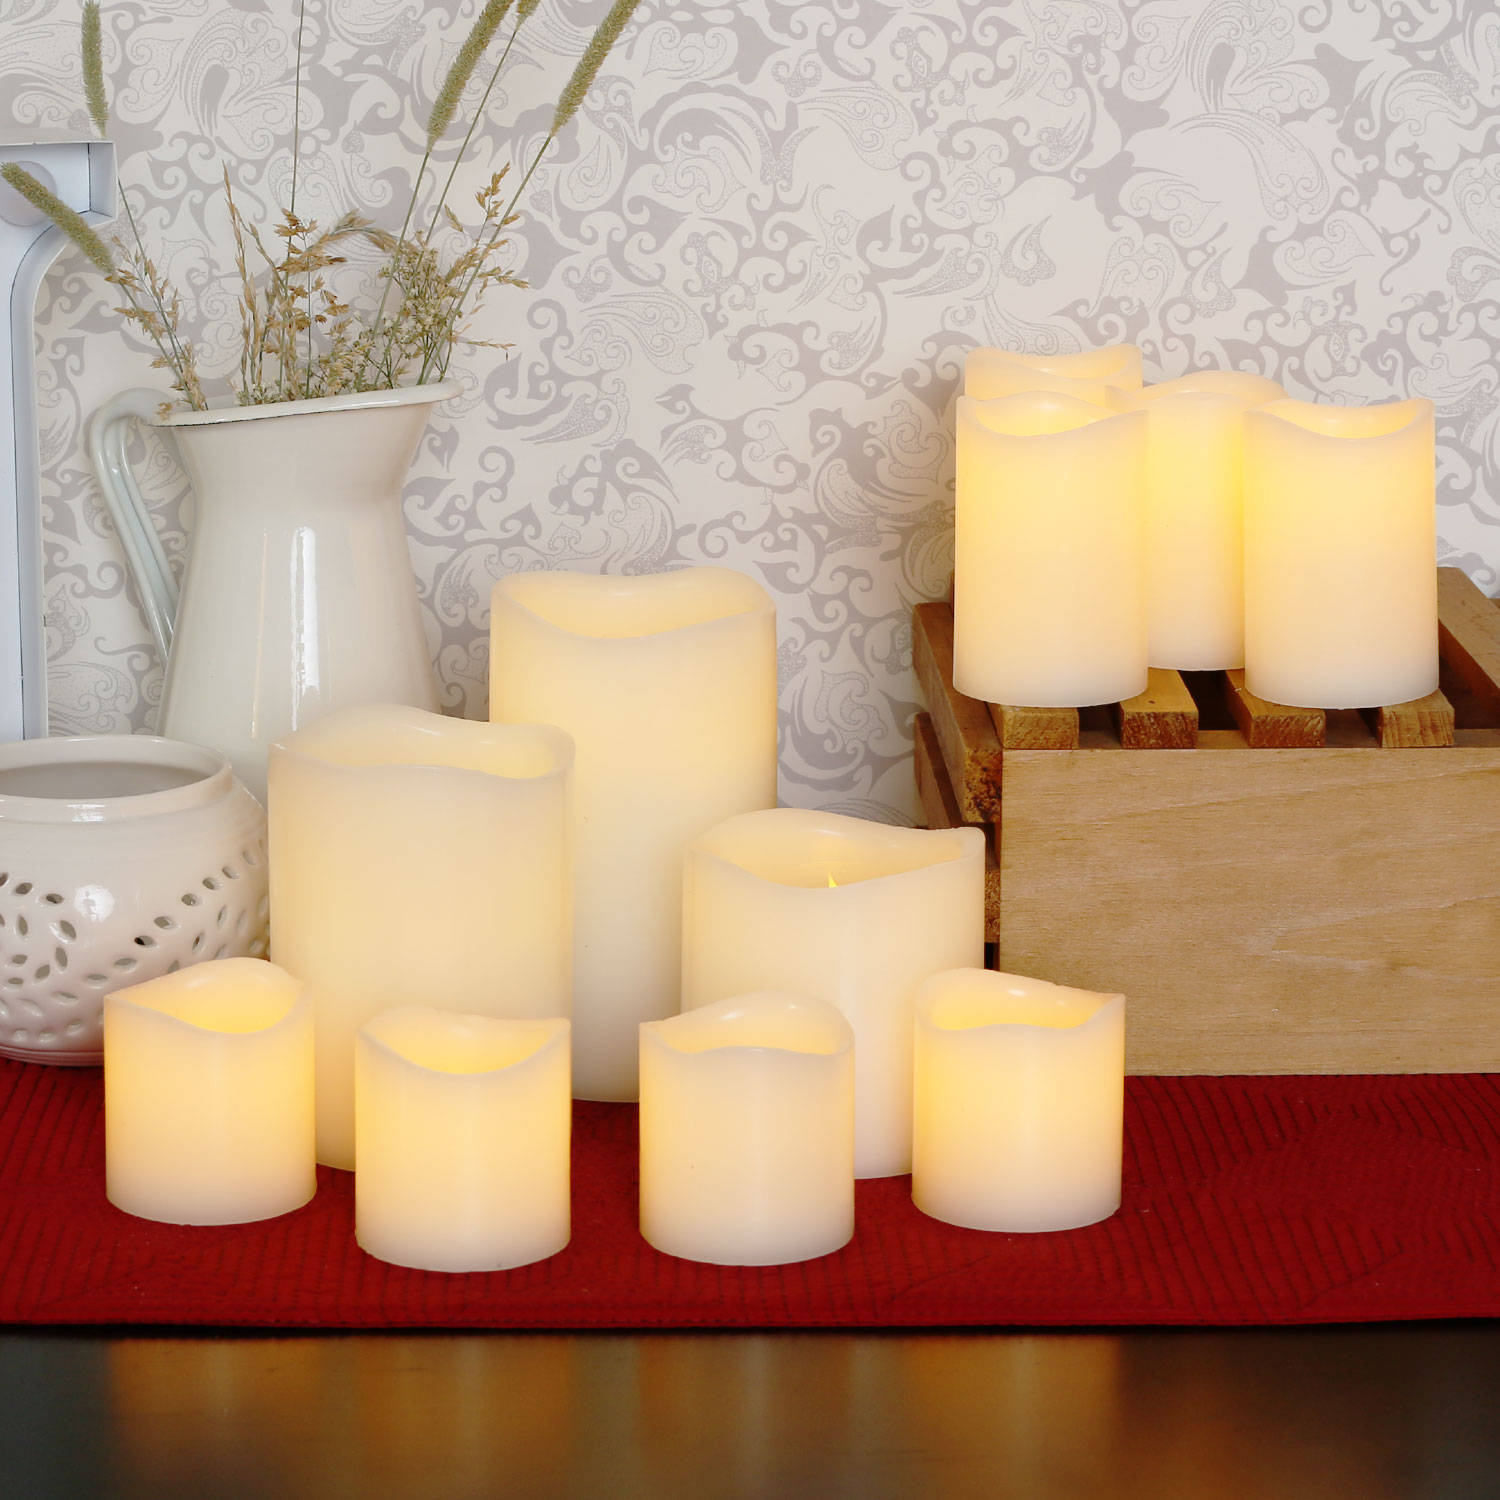 Lit decor flameless candles pillars - Candle centerpieces for home ...